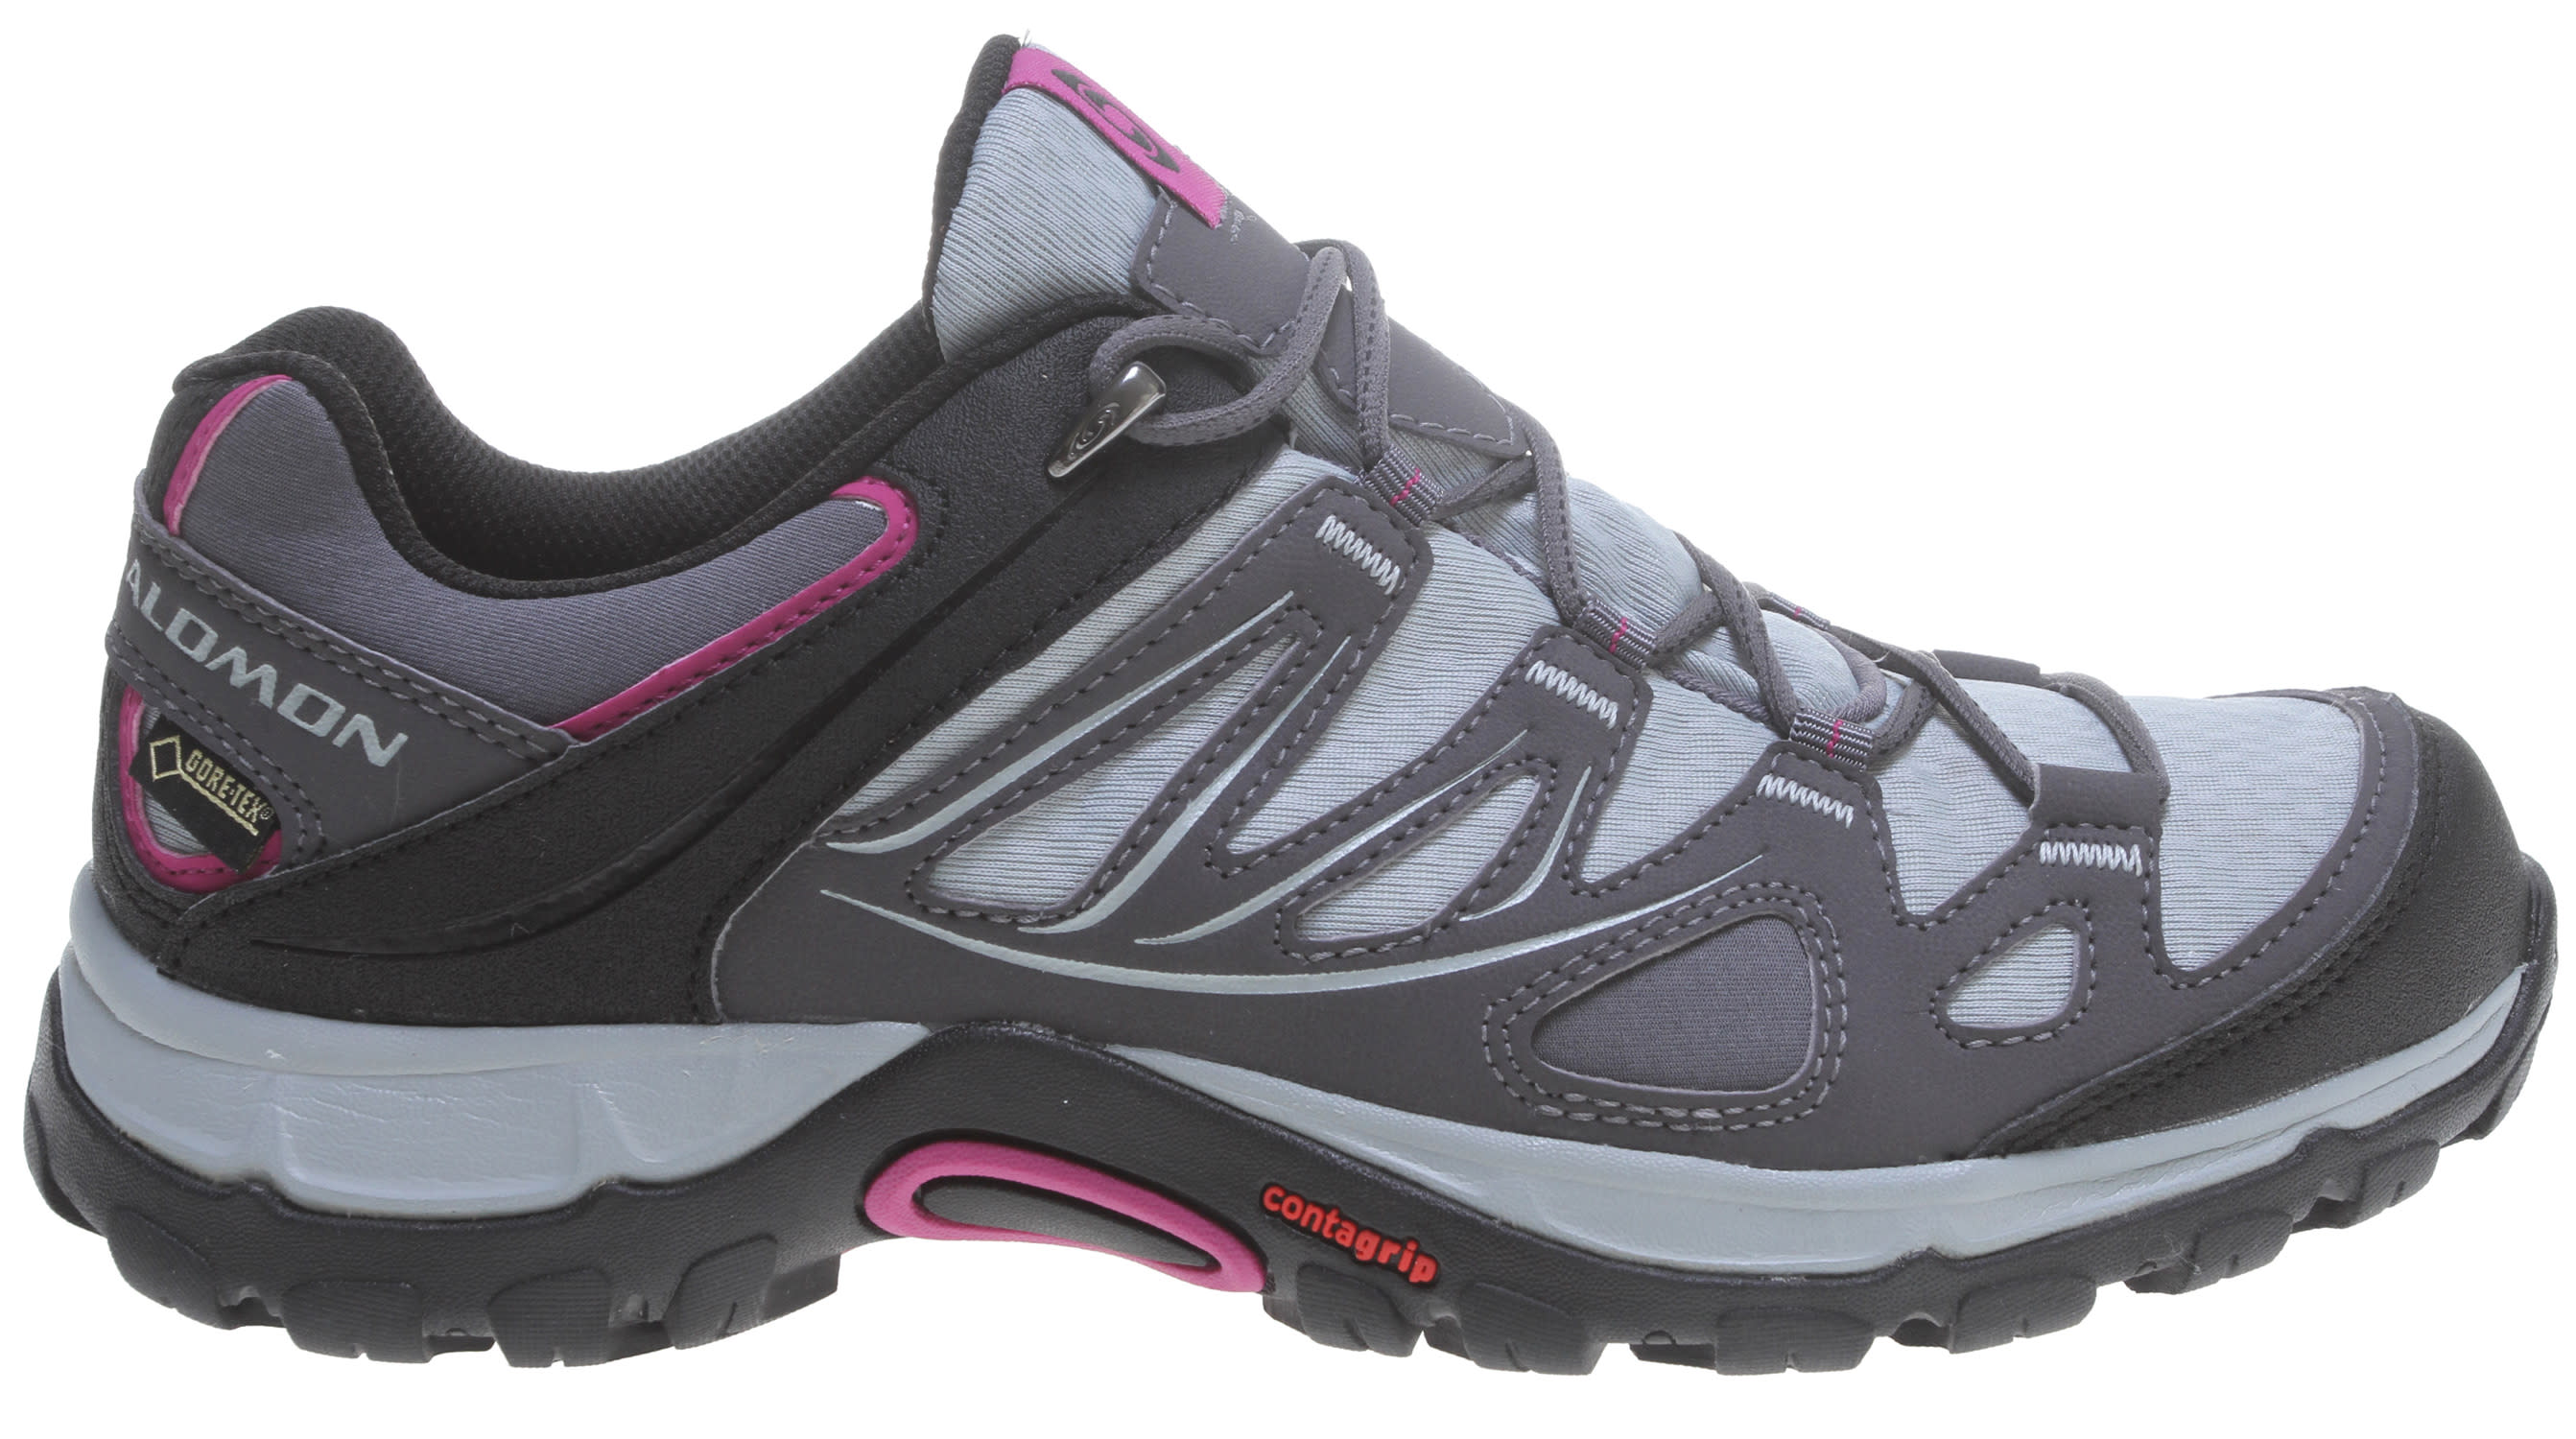 Lastest 85z5s4uu Nuevas Salomon Womens Hiking Boots